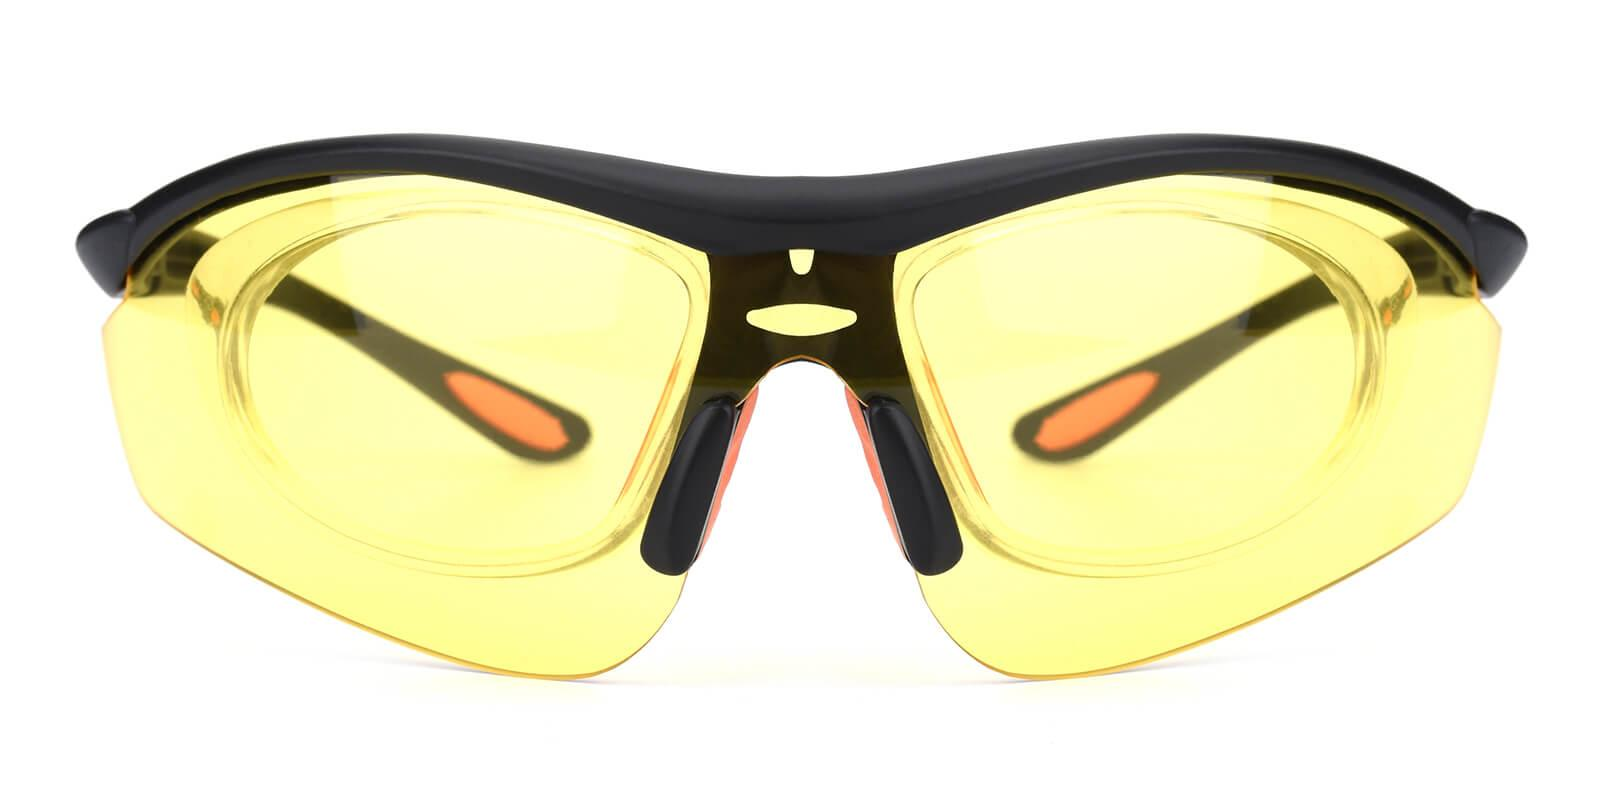 Preavey-Yellow-Square-Plastic-SportsGlasses-additional2